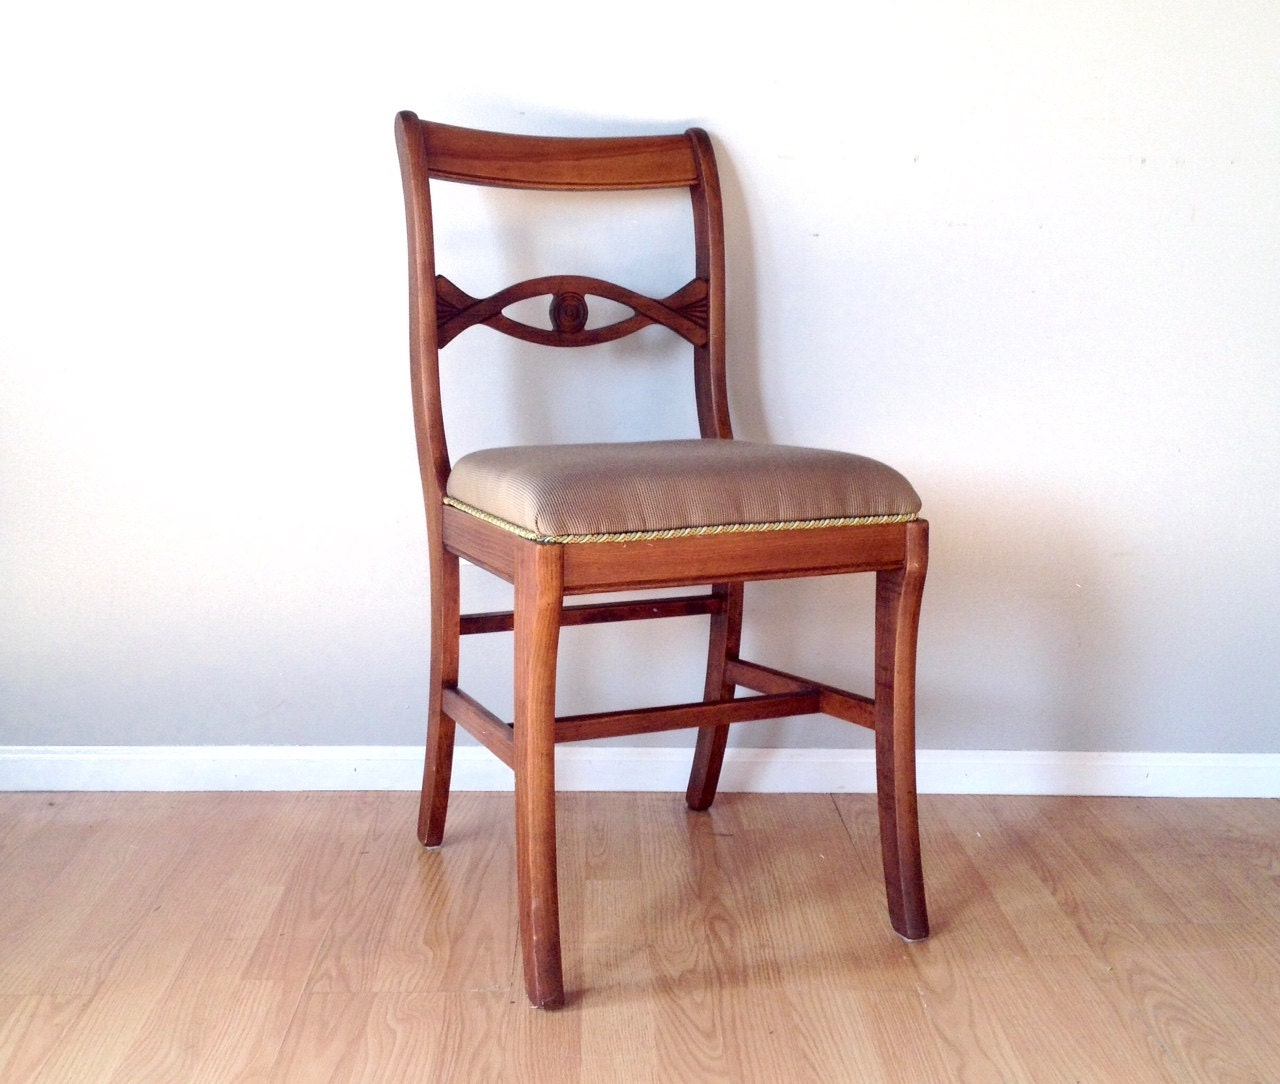 Vintage Tell City Mahogany Chair Retro Furniture Dining Room